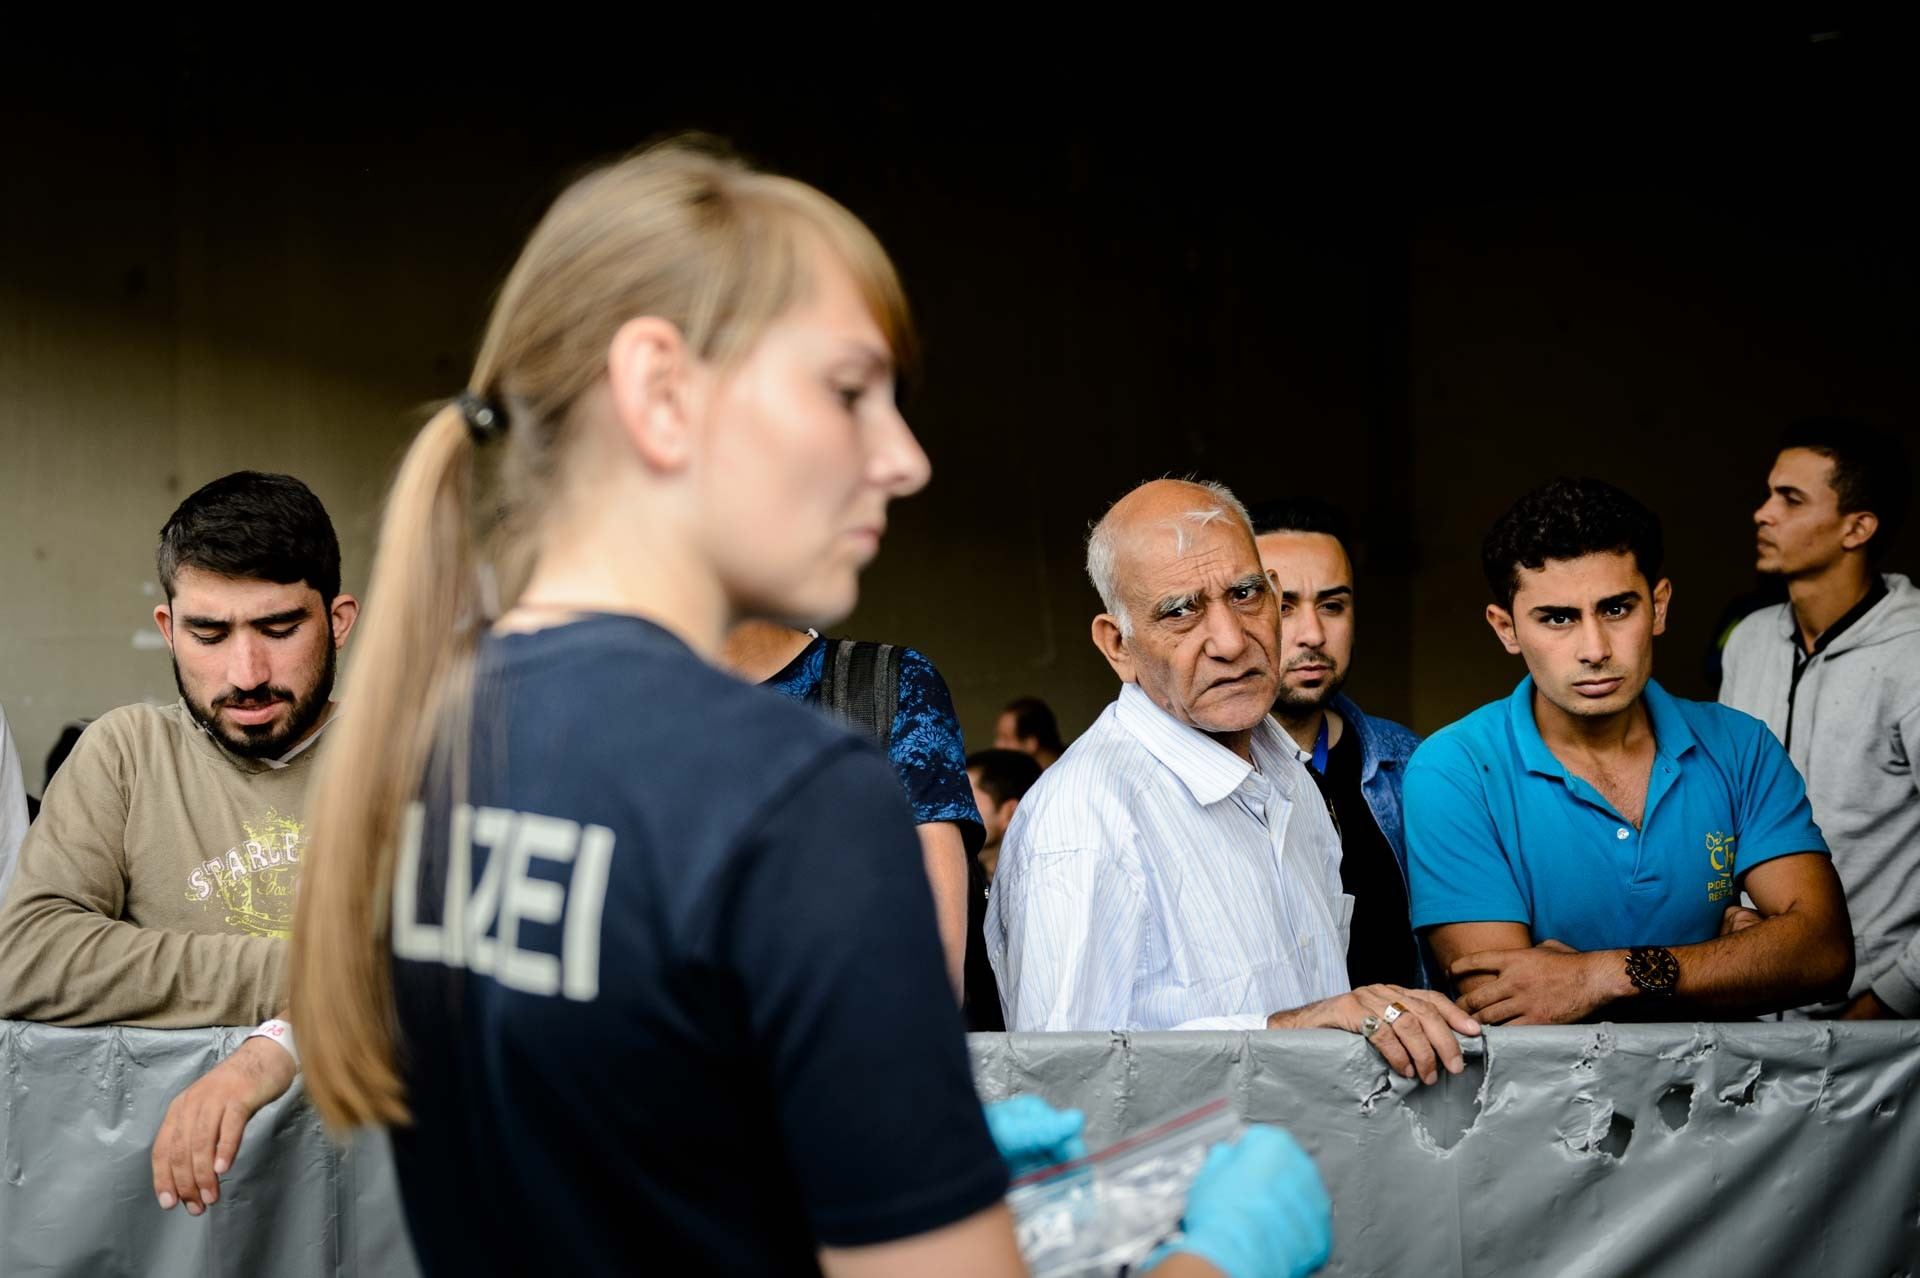 Refugees that recently arrived to Passau, a small border town in Germany, wait for their re-transfer to a processing center, where they can officially apply for asylum.